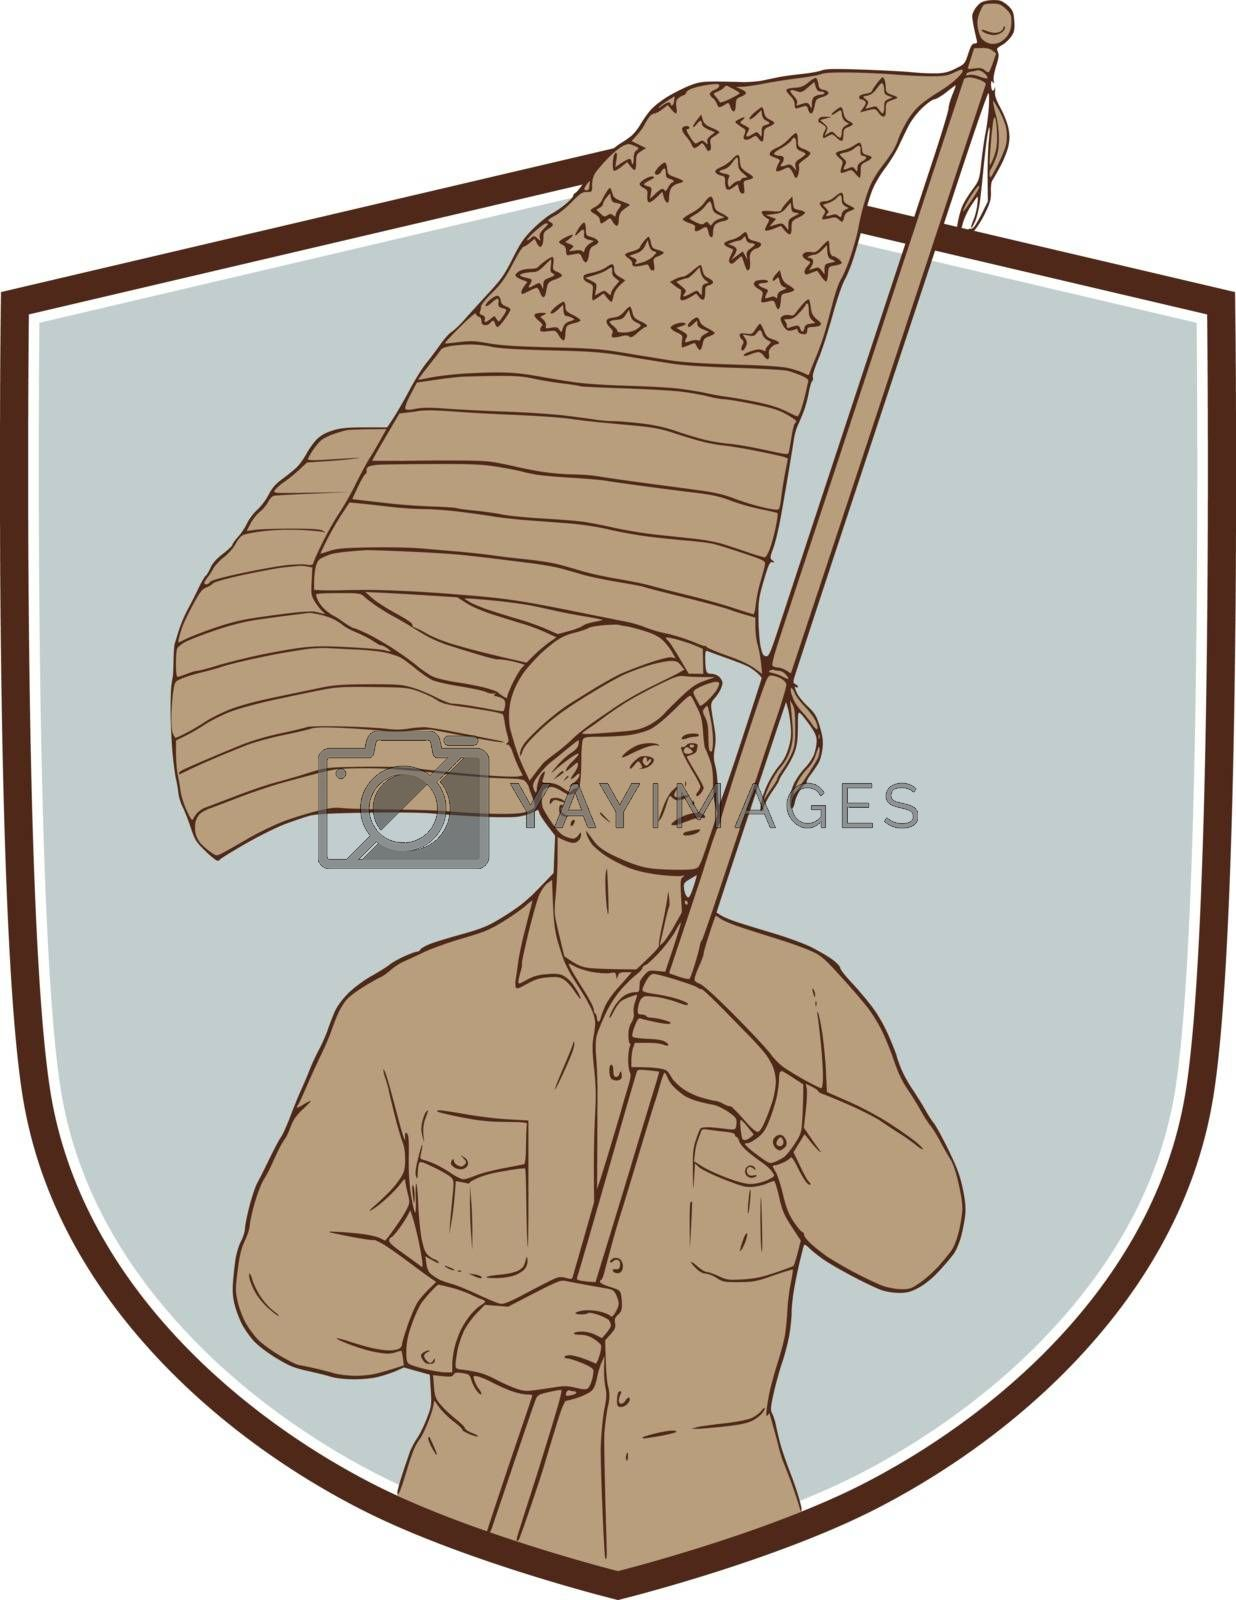 Drawing sketch style illustration of an american soldier serviceman waving holding usa flag looking to the side set inside shield crest on isolated background.